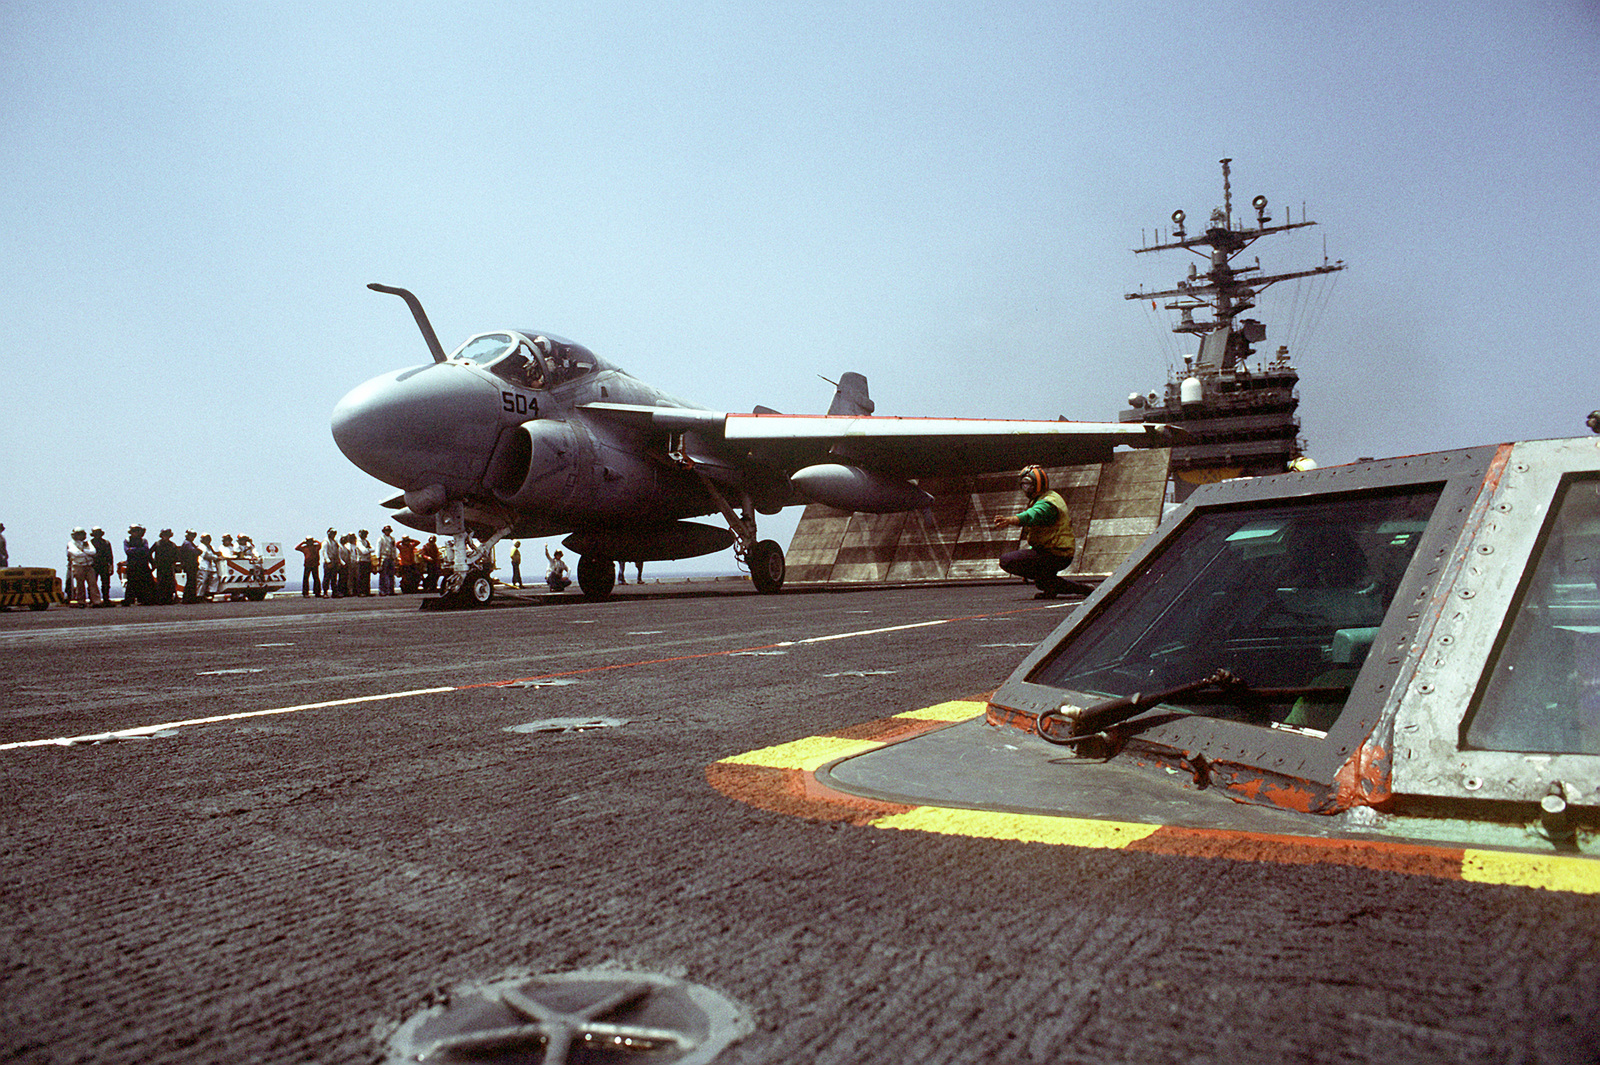 A safety observer signals instructions to an A-6E Intruder pilot during flight operations aboard the nuclear-powered aircraft carrier USS DWIGHT D. EISENHOWER (CVN-69). The integrated catapult control system is in the foreground